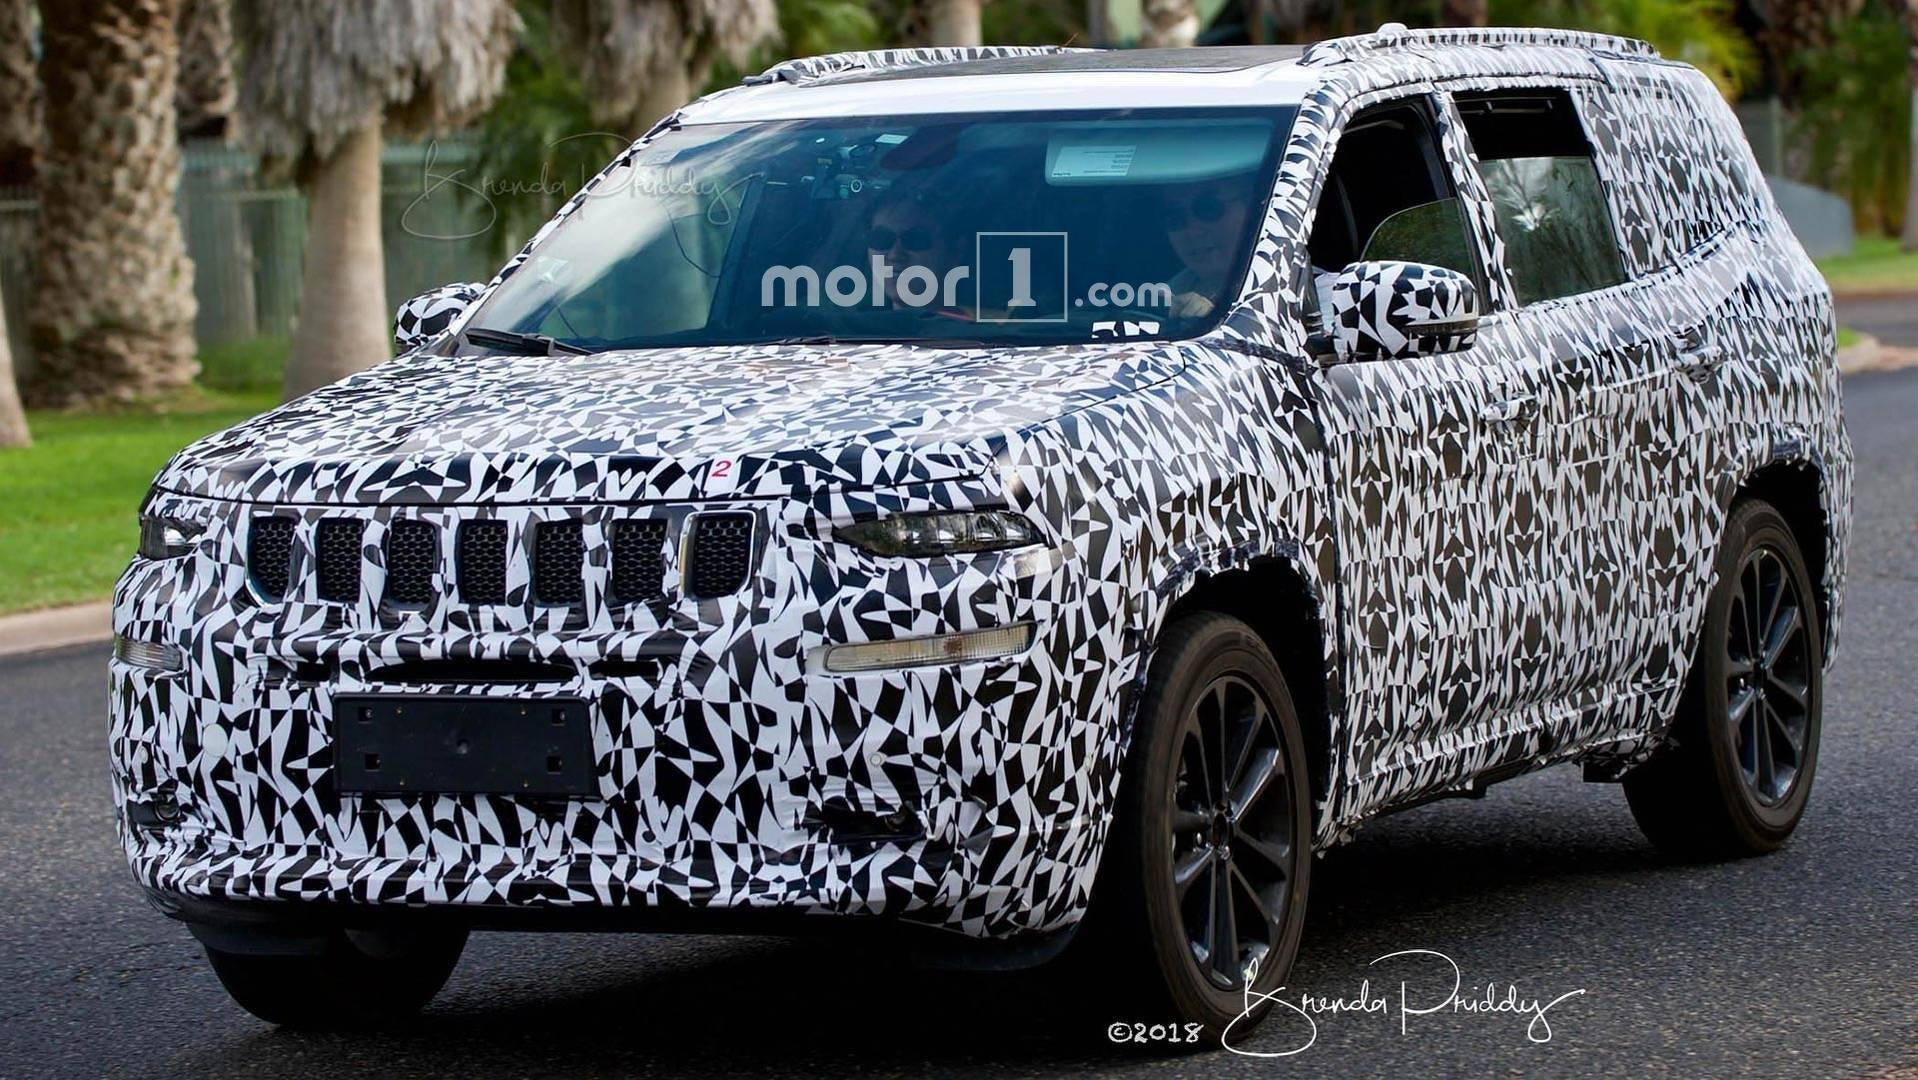 2019 Jeep Grand Wagoneer Price, Concept, Spy Photos >> Jeep Wagoneer Spotted In Near Production Form With New Details